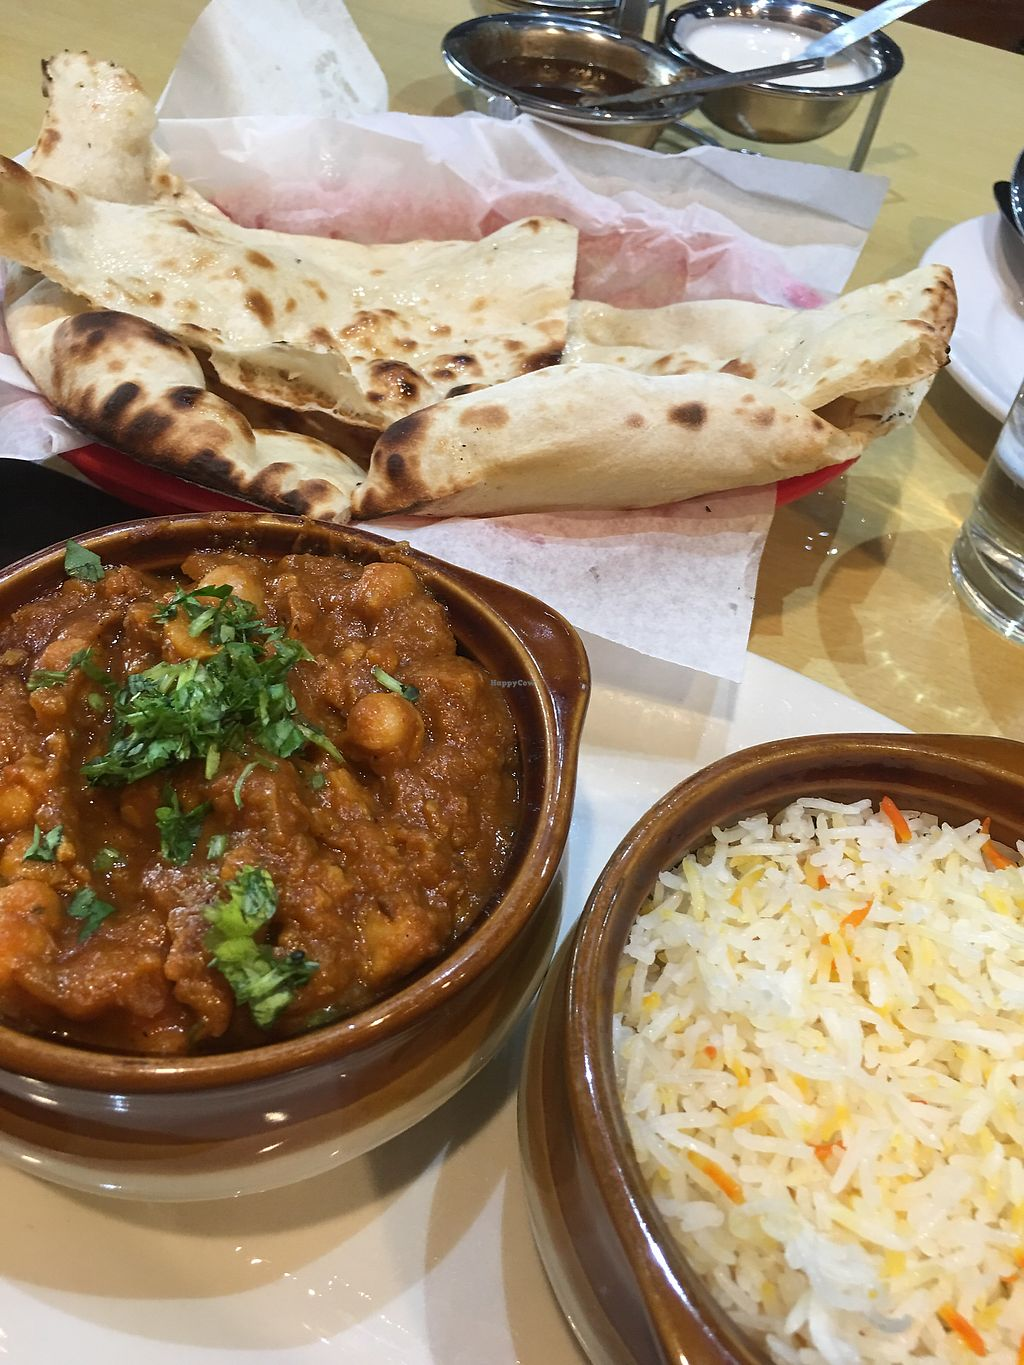 "Photo of Spice Club Indian Grill  by <a href=""/members/profile/NatashaJason"">NatashaJason</a> <br/>Chana Masala - (vegetarian because of the naan bread)  <br/> July 8, 2017  - <a href='/contact/abuse/image/89917/278014'>Report</a>"